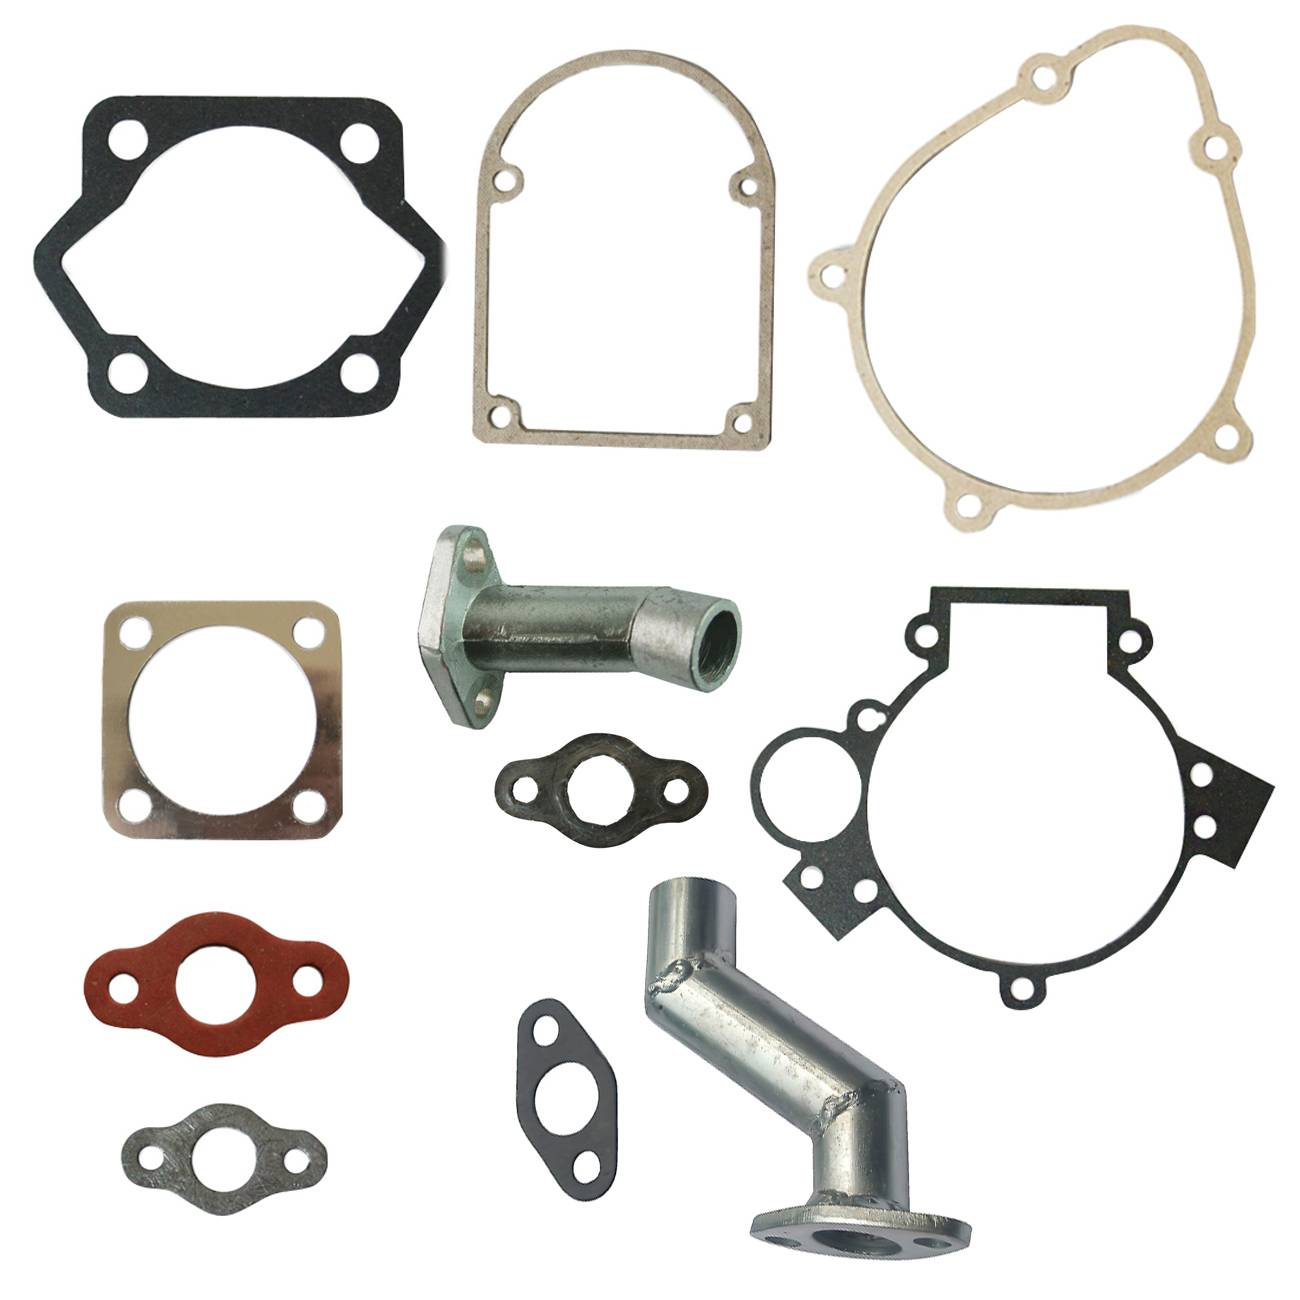 Gasket Kit&Intake Manifold <font><b>Carburetor</b></font> For 49cc 66cc <font><b>80cc</b></font> 2 Stroke Motorized Bike image